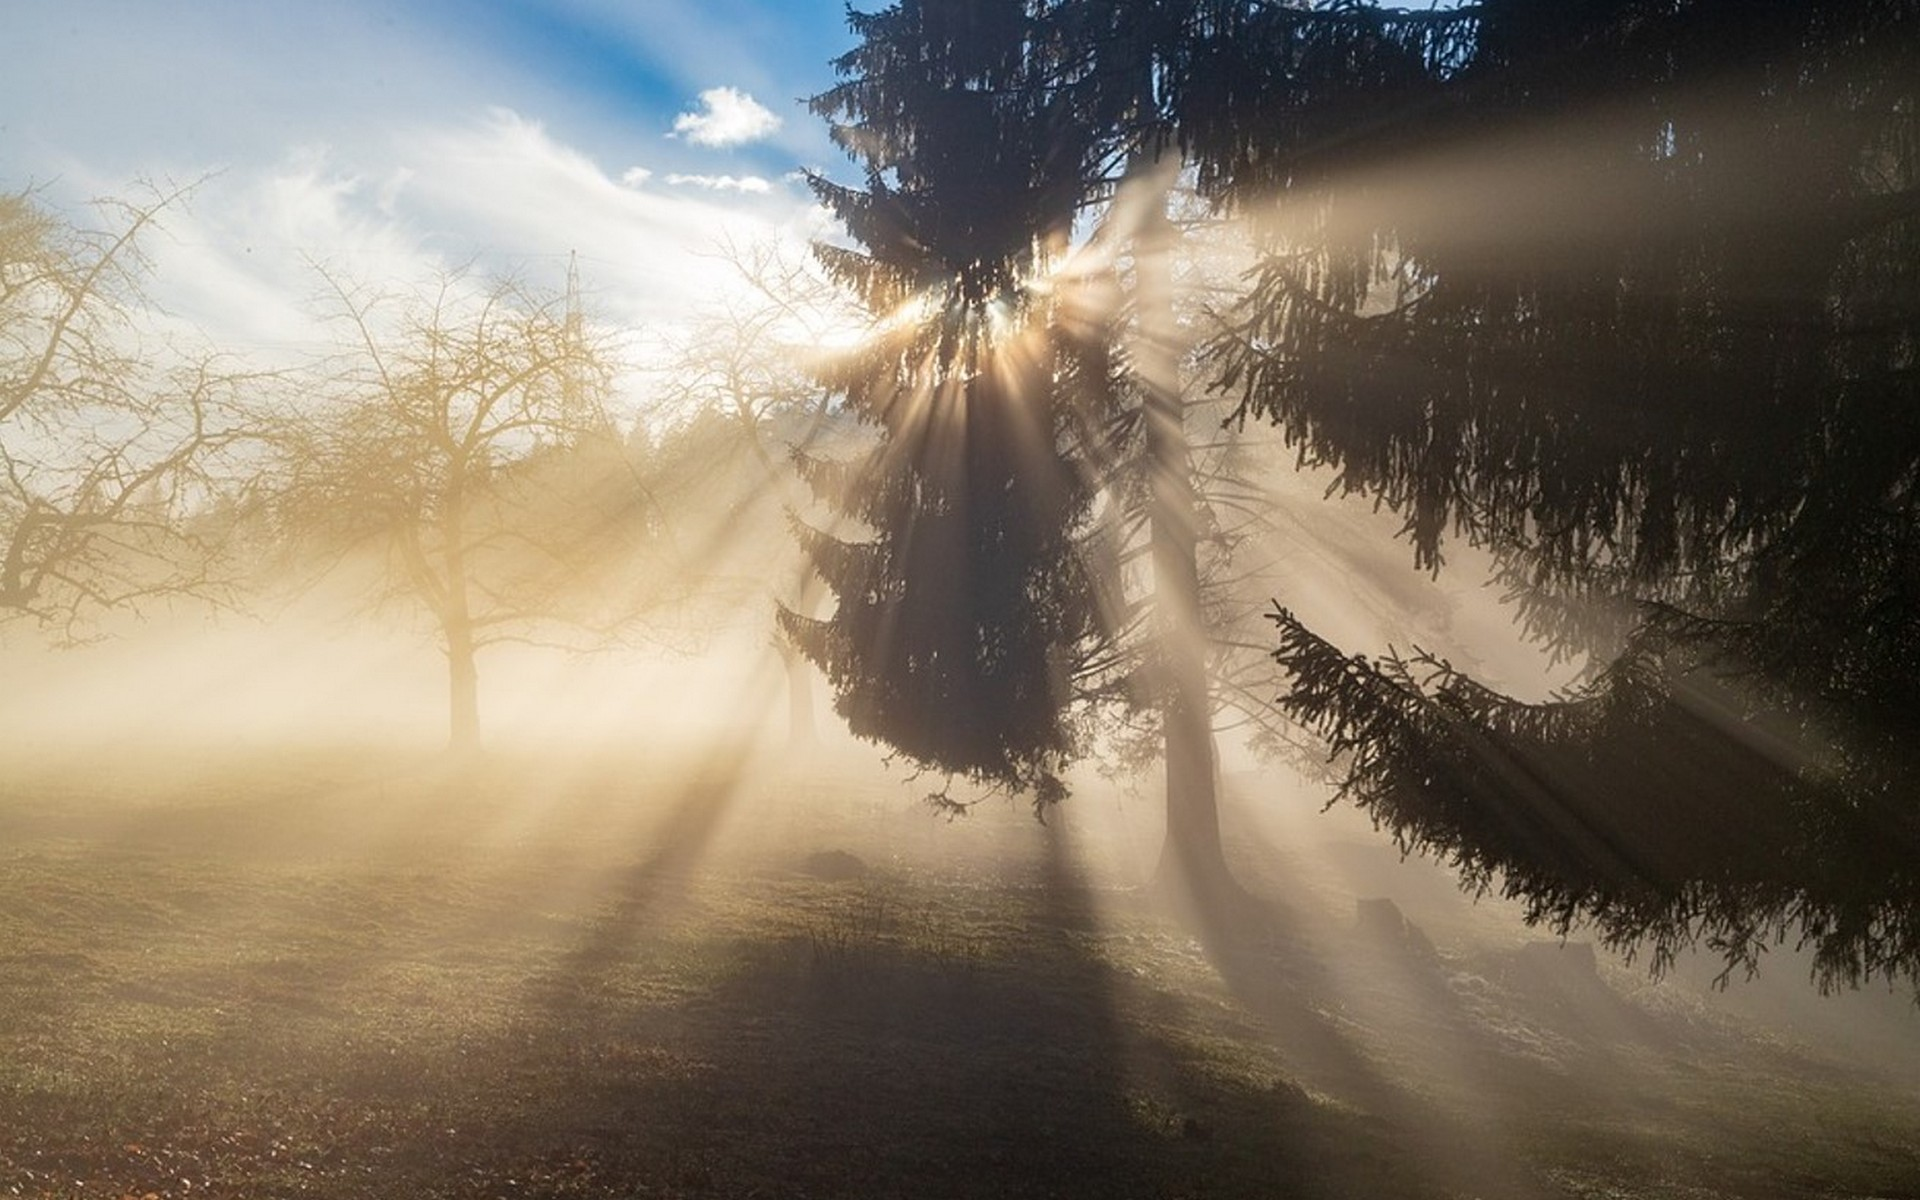 Winter sunlight filtering through trees in a London park